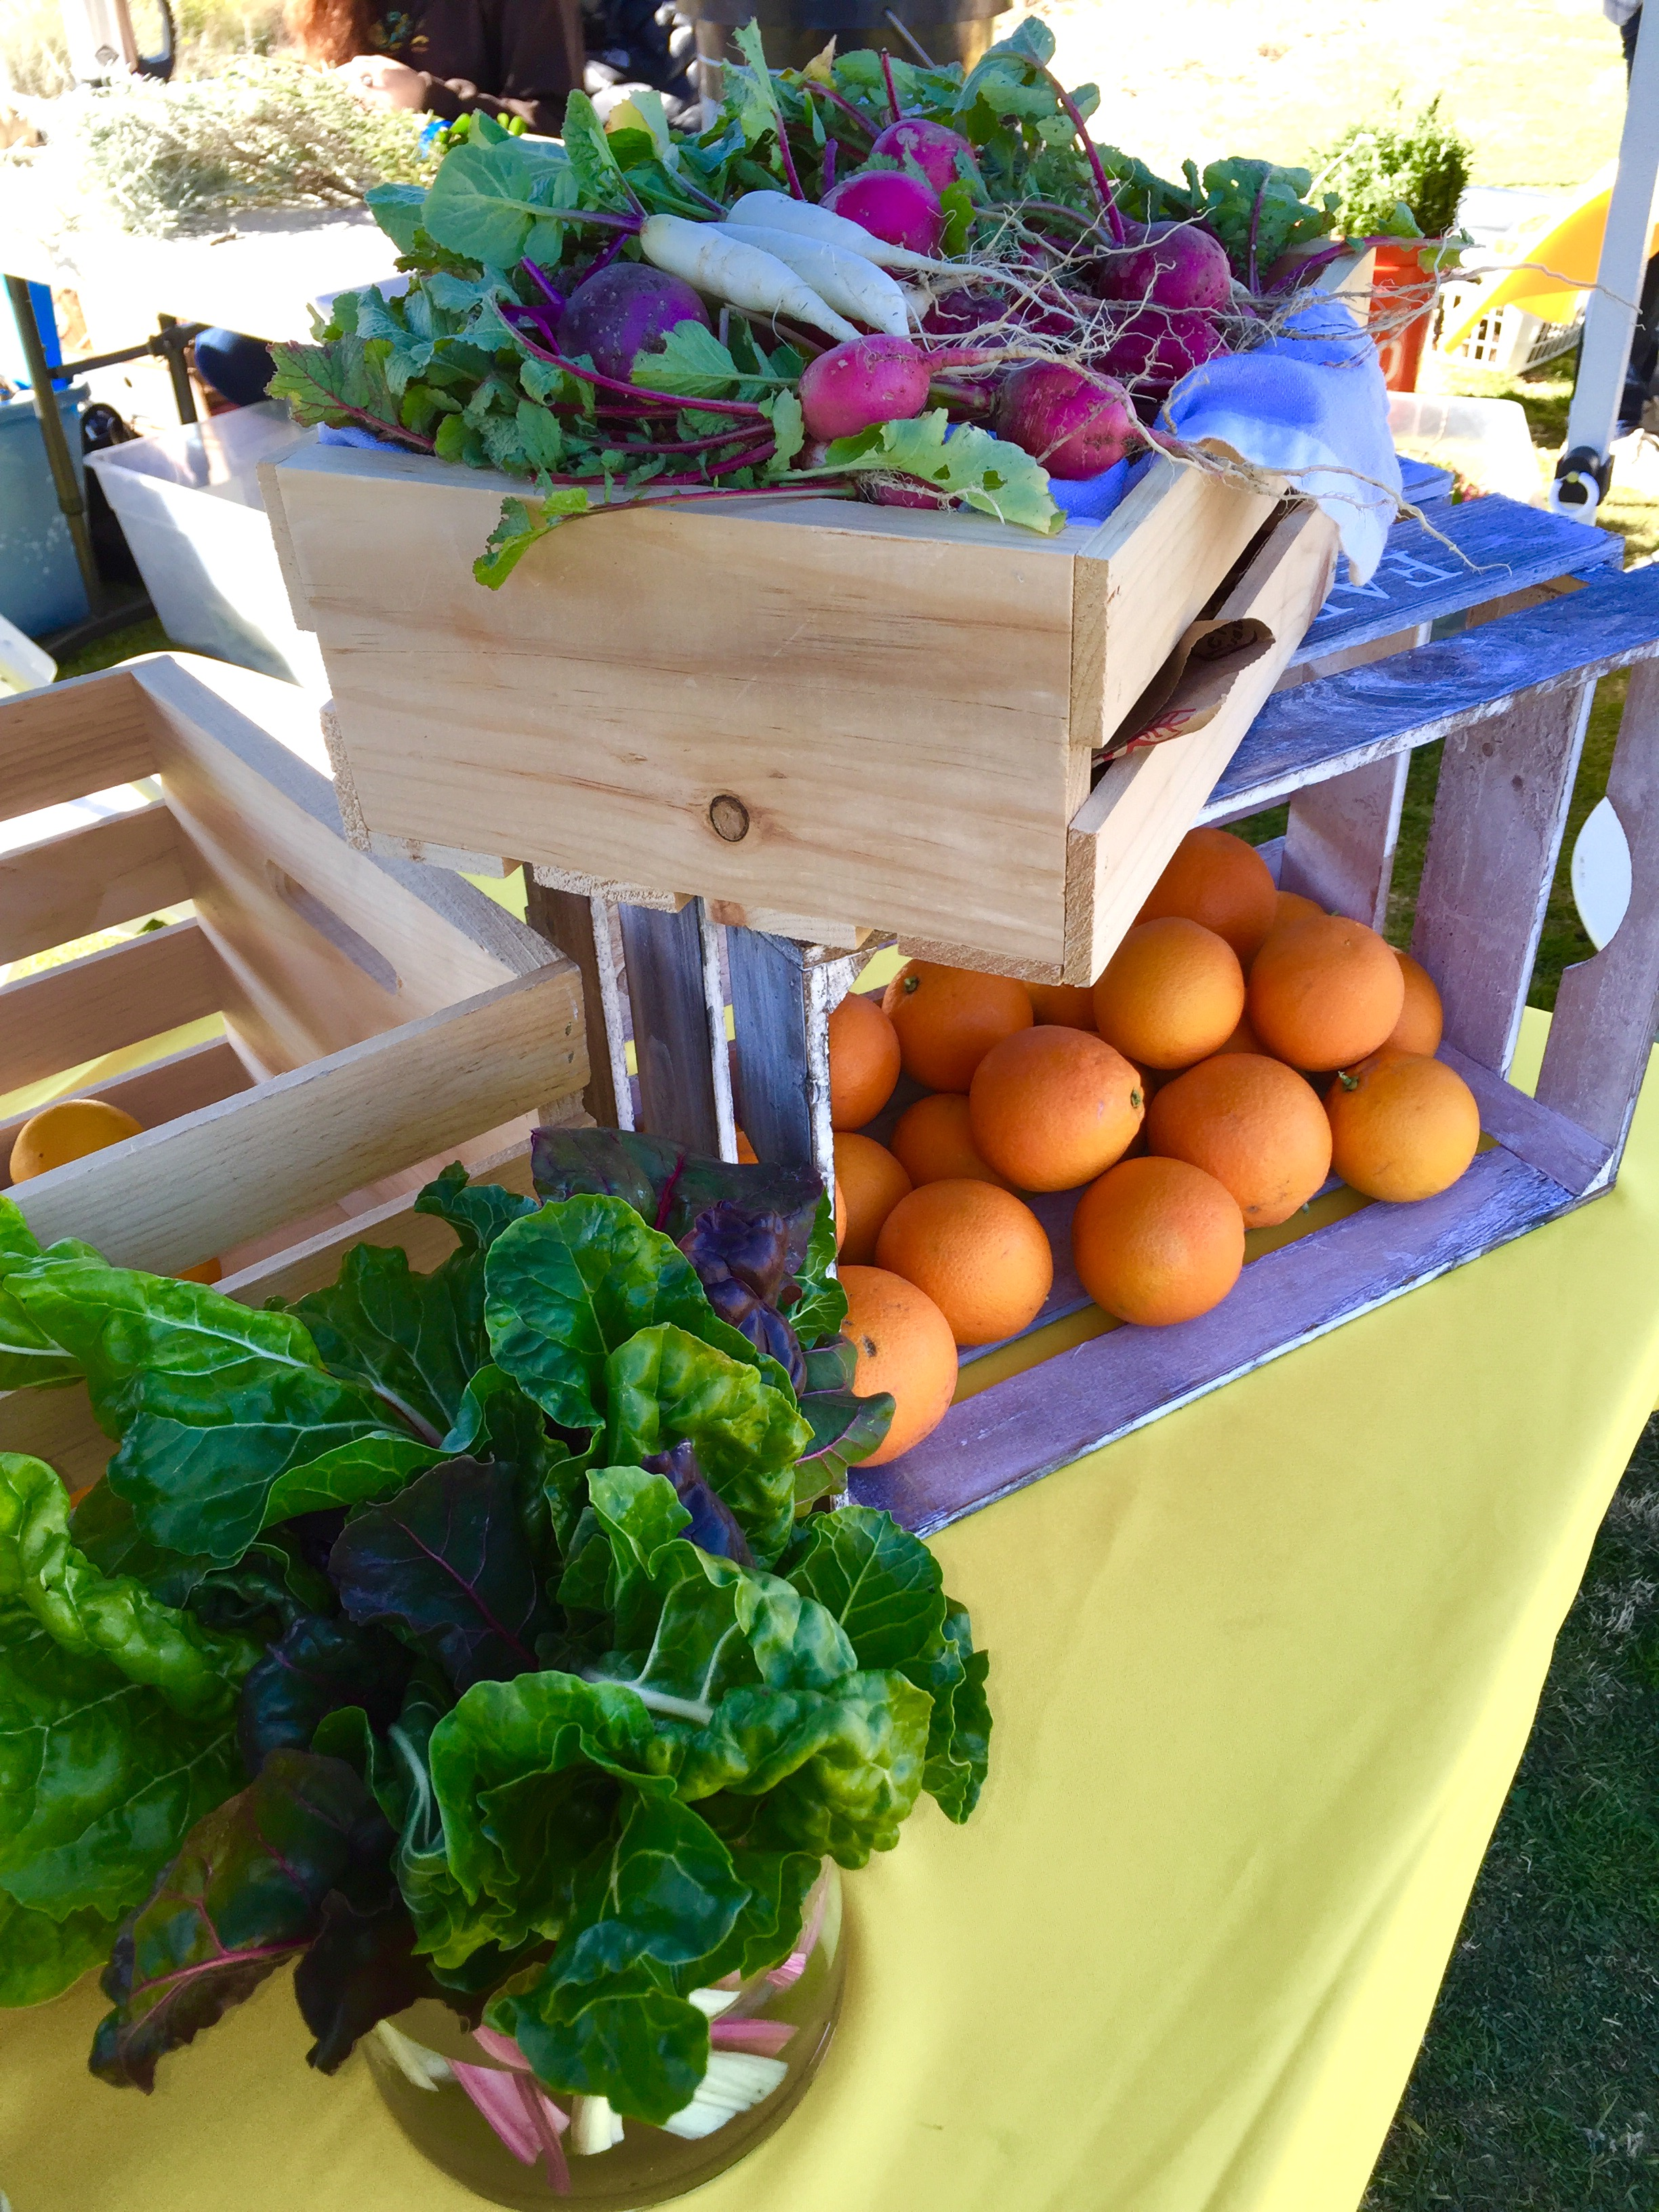 Fruits and vegetables grown by Oak Park students - photo courtesy of Kurt Weiss